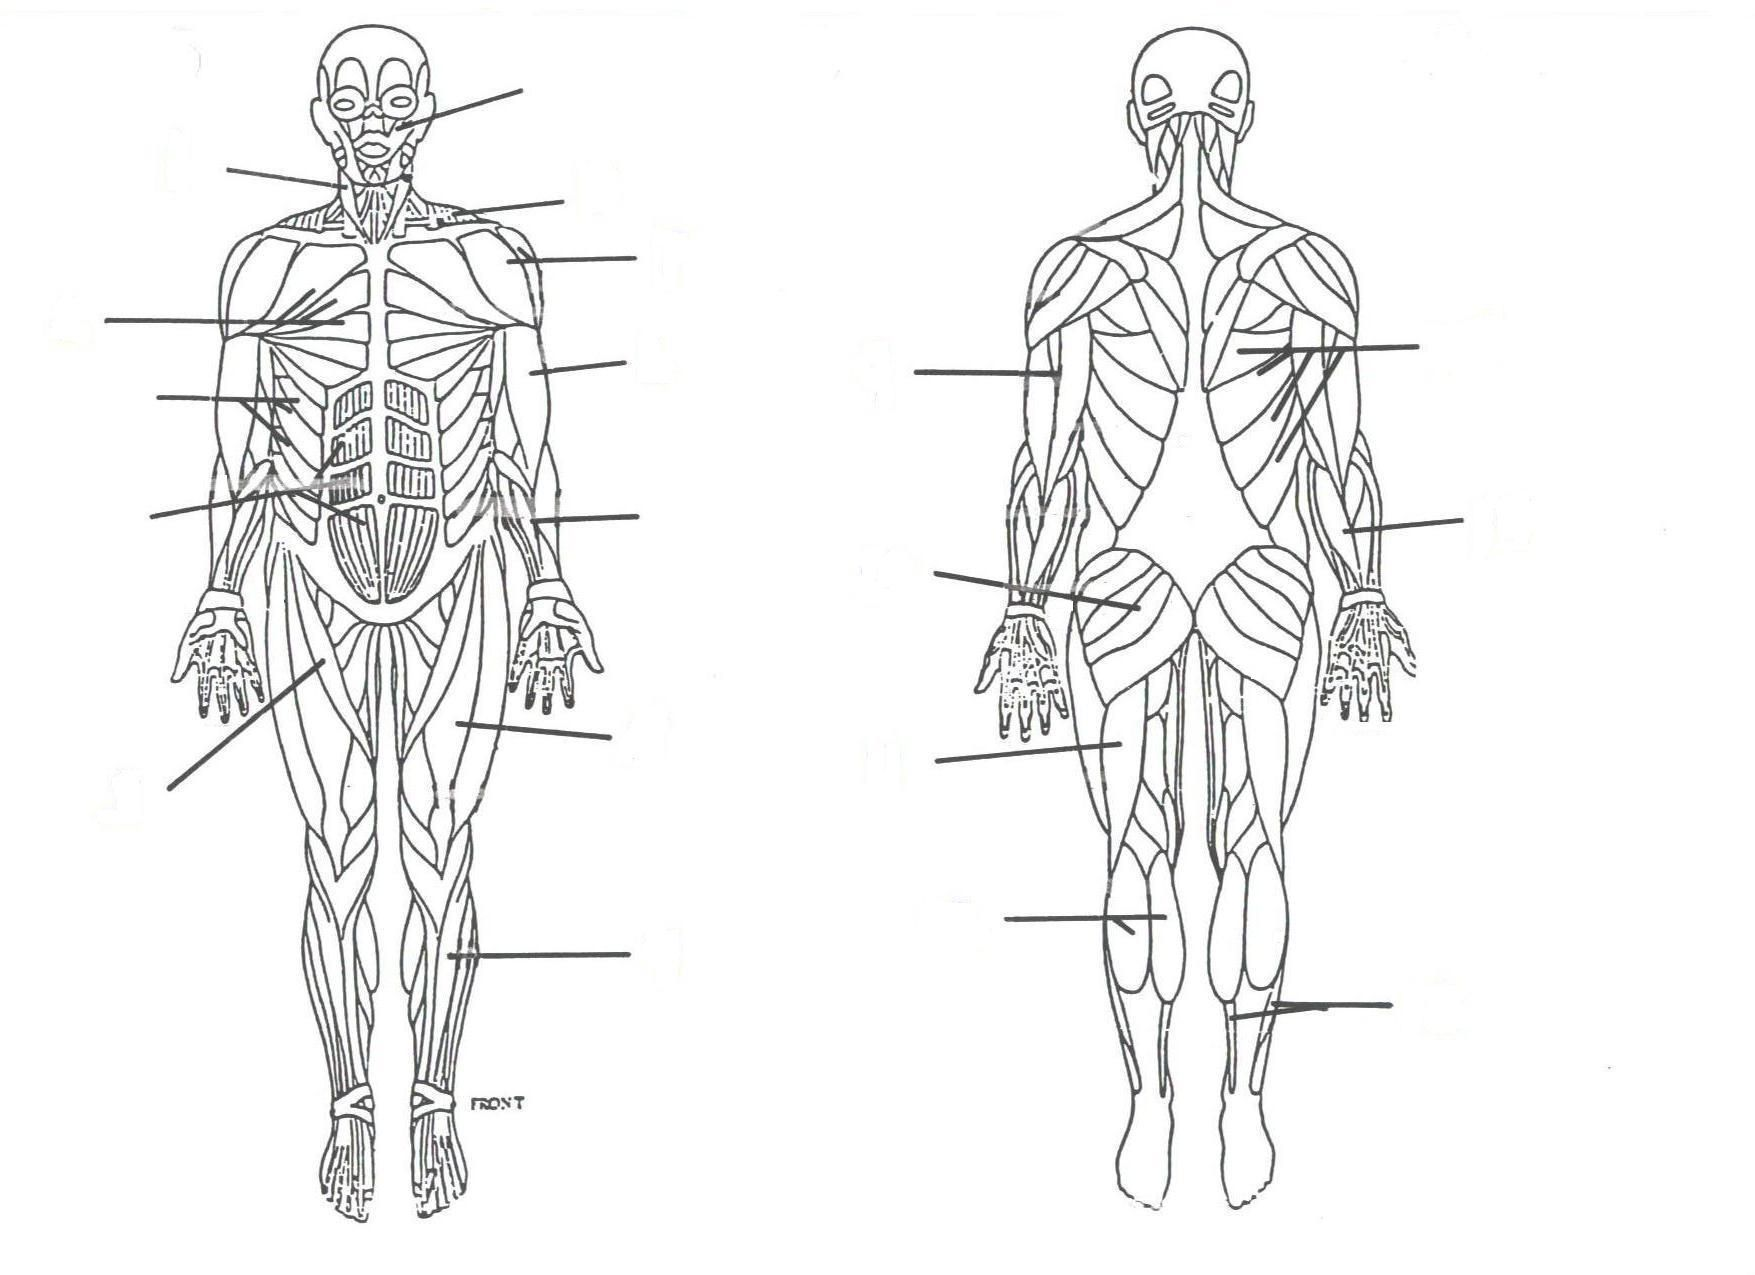 Images Of The Skeletal System Without Labels